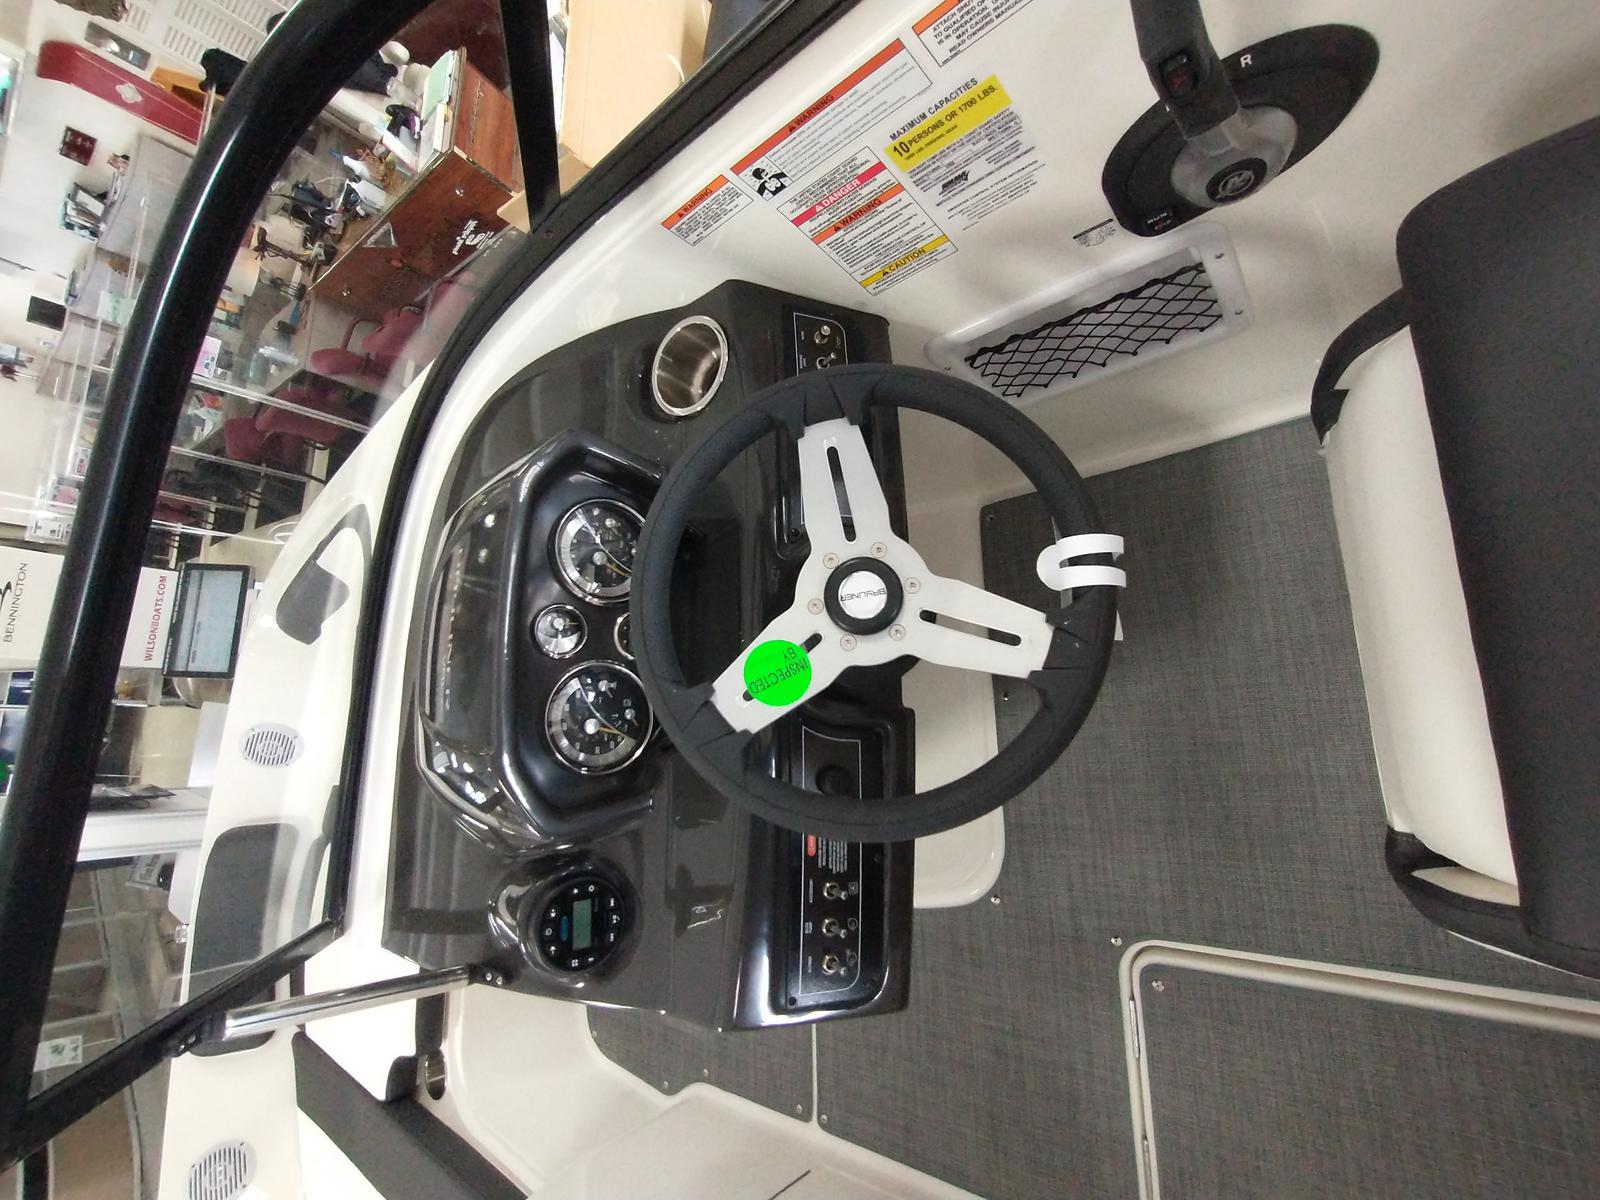 2021 Bayliner boat for sale, model of the boat is VR6 Bowrider & Image # 6 of 10